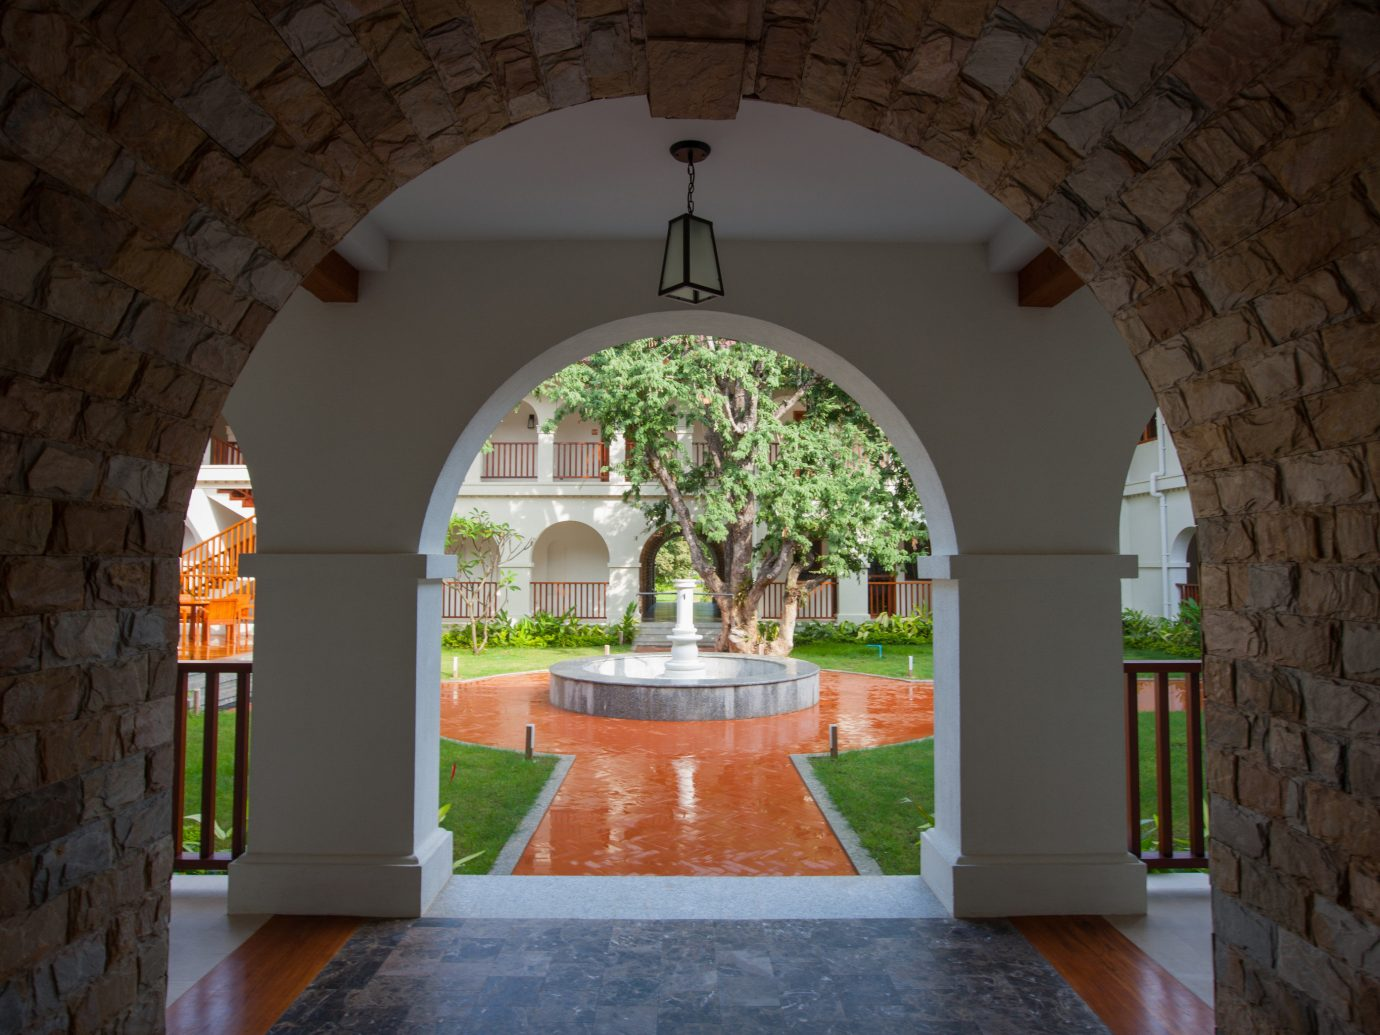 Hotels wall building arch estate house Architecture hacienda home stone chapel Courtyard interior design cottage mansion monastery Villa place of worship